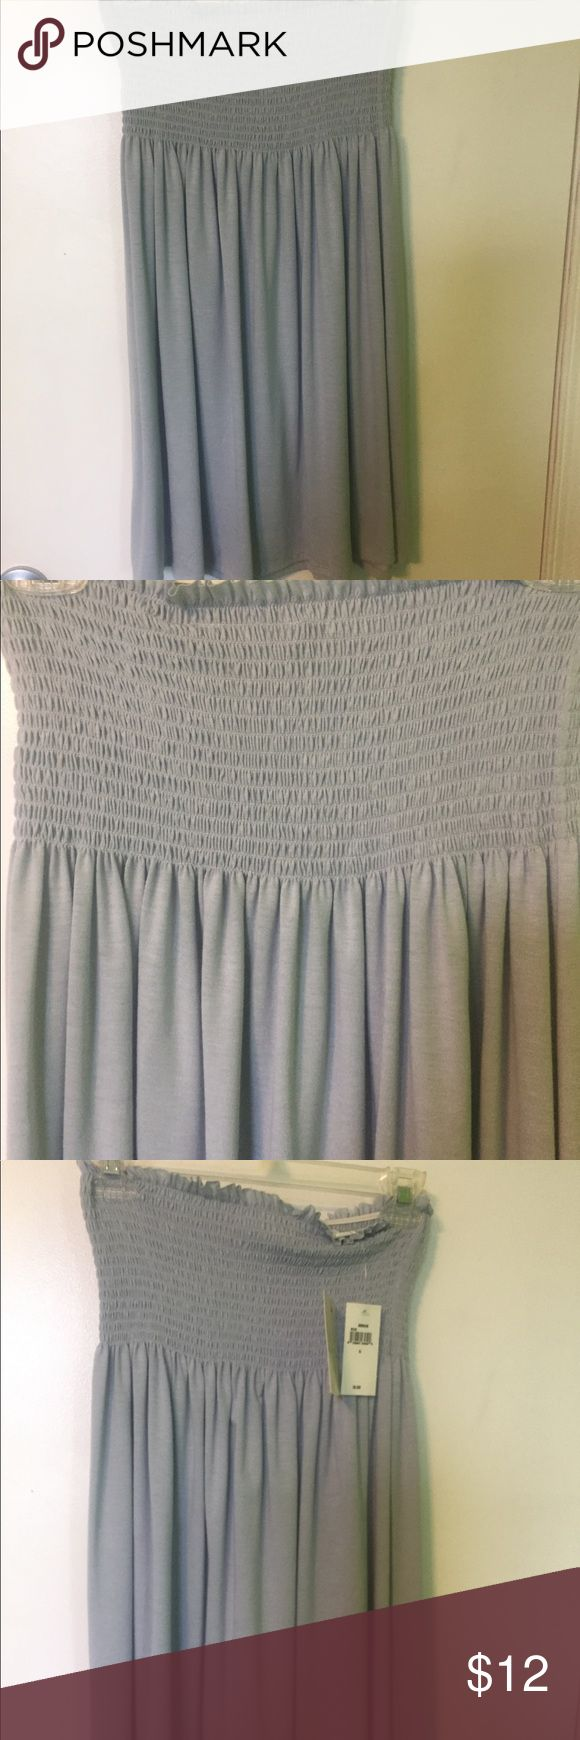 Women's Small Strapless Sundress Women's Small Strapless sundress. It's kind of a lighter blue color. It has never been worn. Excellent condition. Dresses Strapless